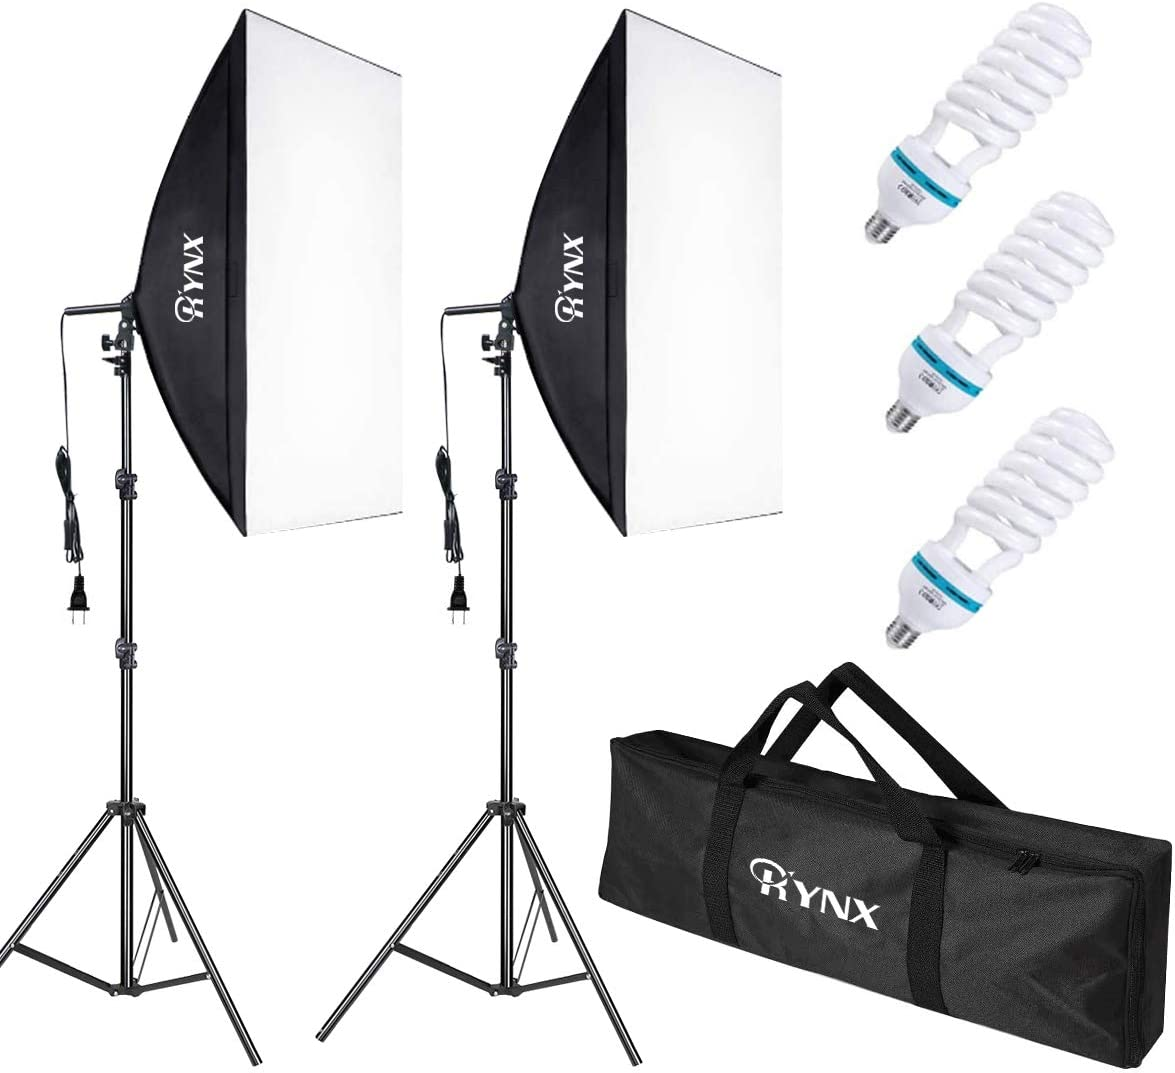 RYNX Softbox Lighting Kit, Professional Studio Photography Continuous Equipment with 135W 5500K E27 Socket Lights and 2 Reflectors 20 x 28 Inch for Portrait Item Fashion Photography